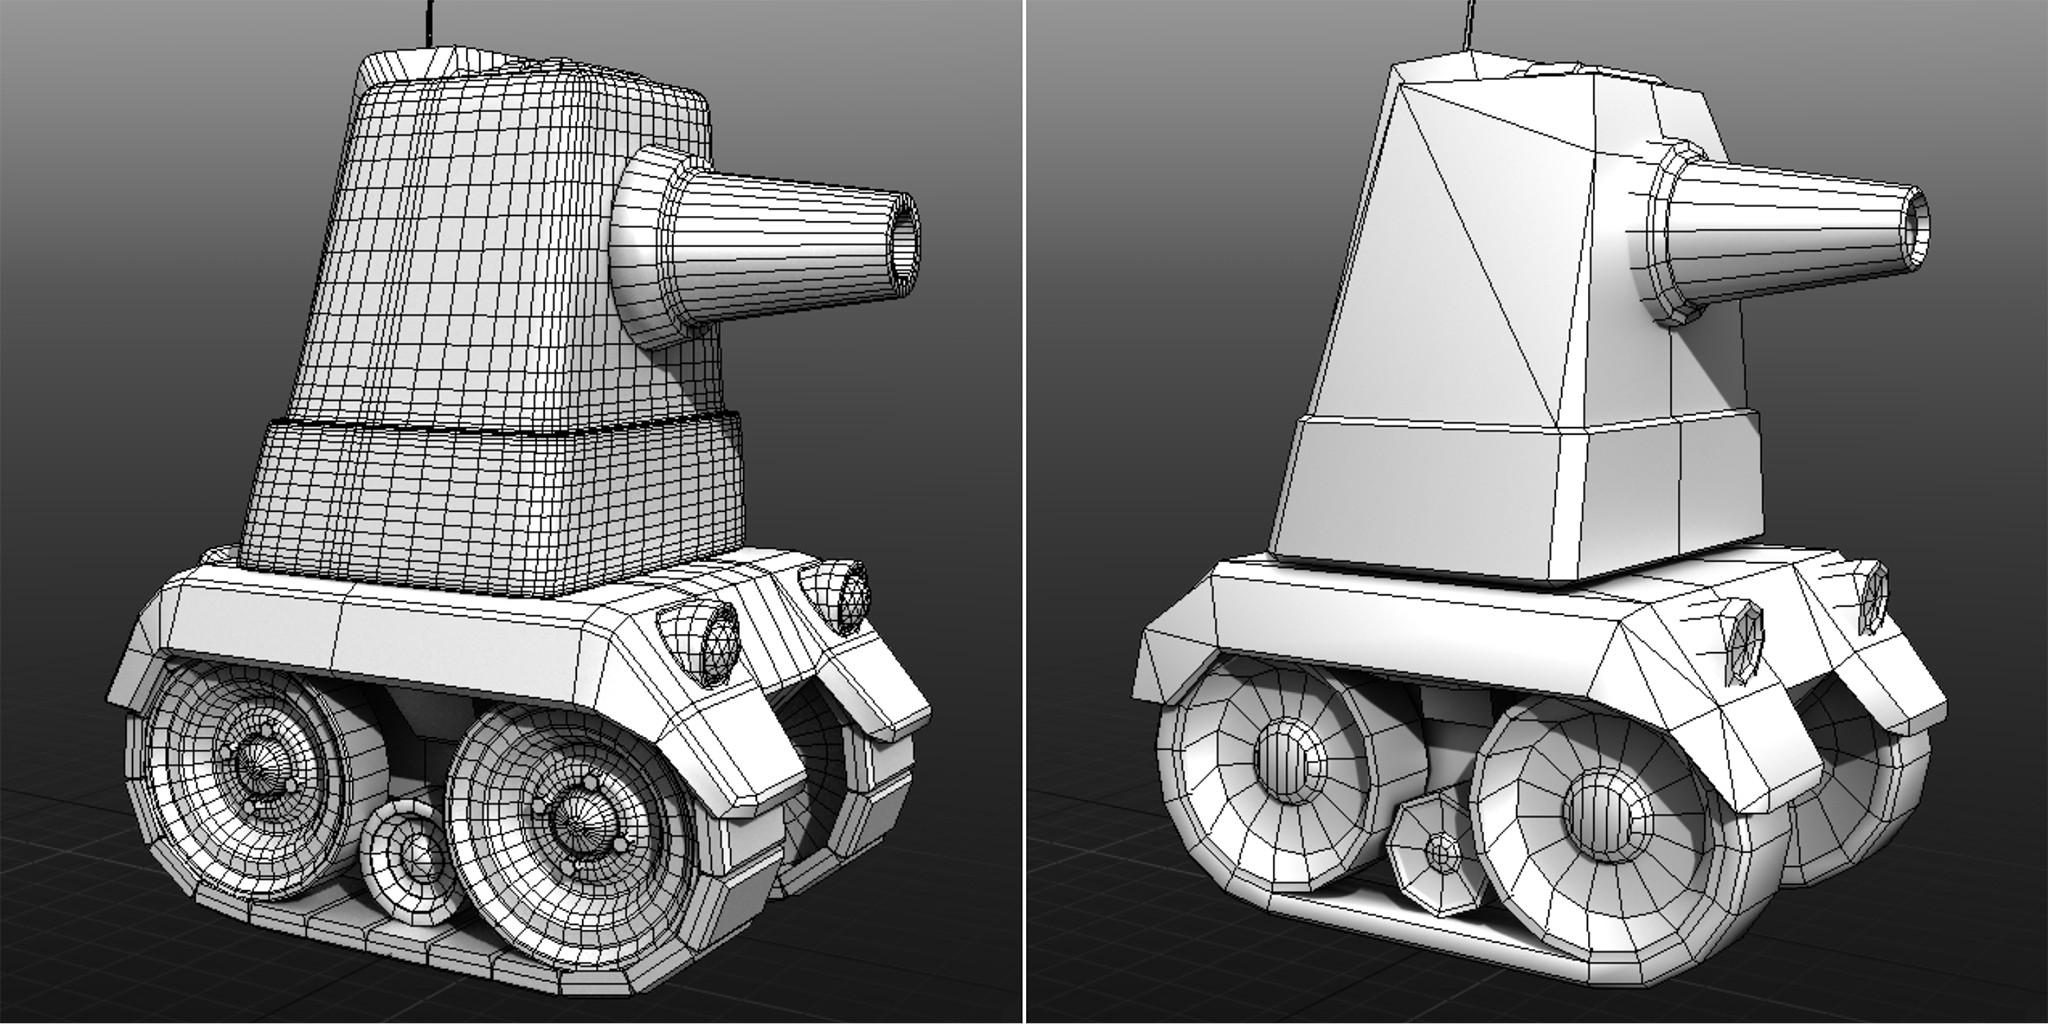 The original model for the tank was nearly 50,000 tris when it was given to me. I reduced it to fewer than 3,000.  Mesh optimized in Modo.